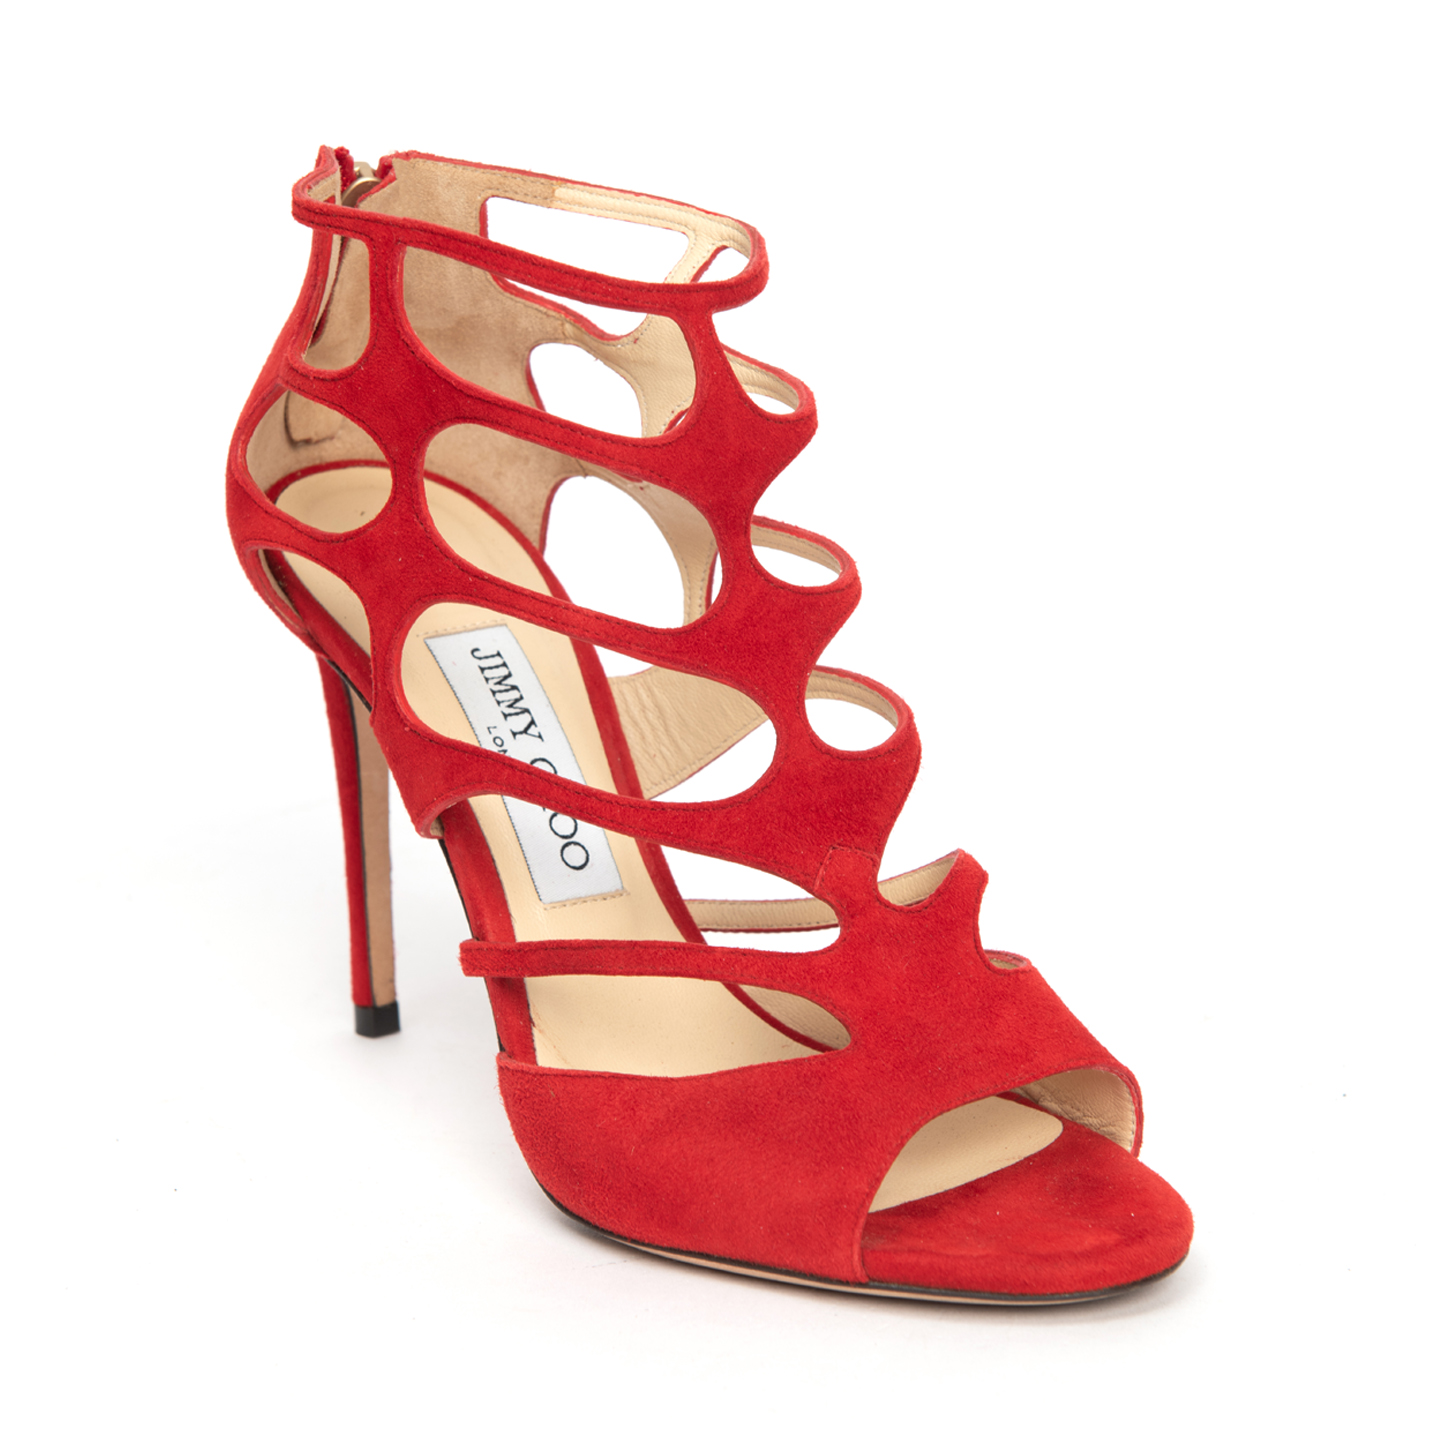 Jimmy Choo Red Suede Leather Ren 100 Sandals 01